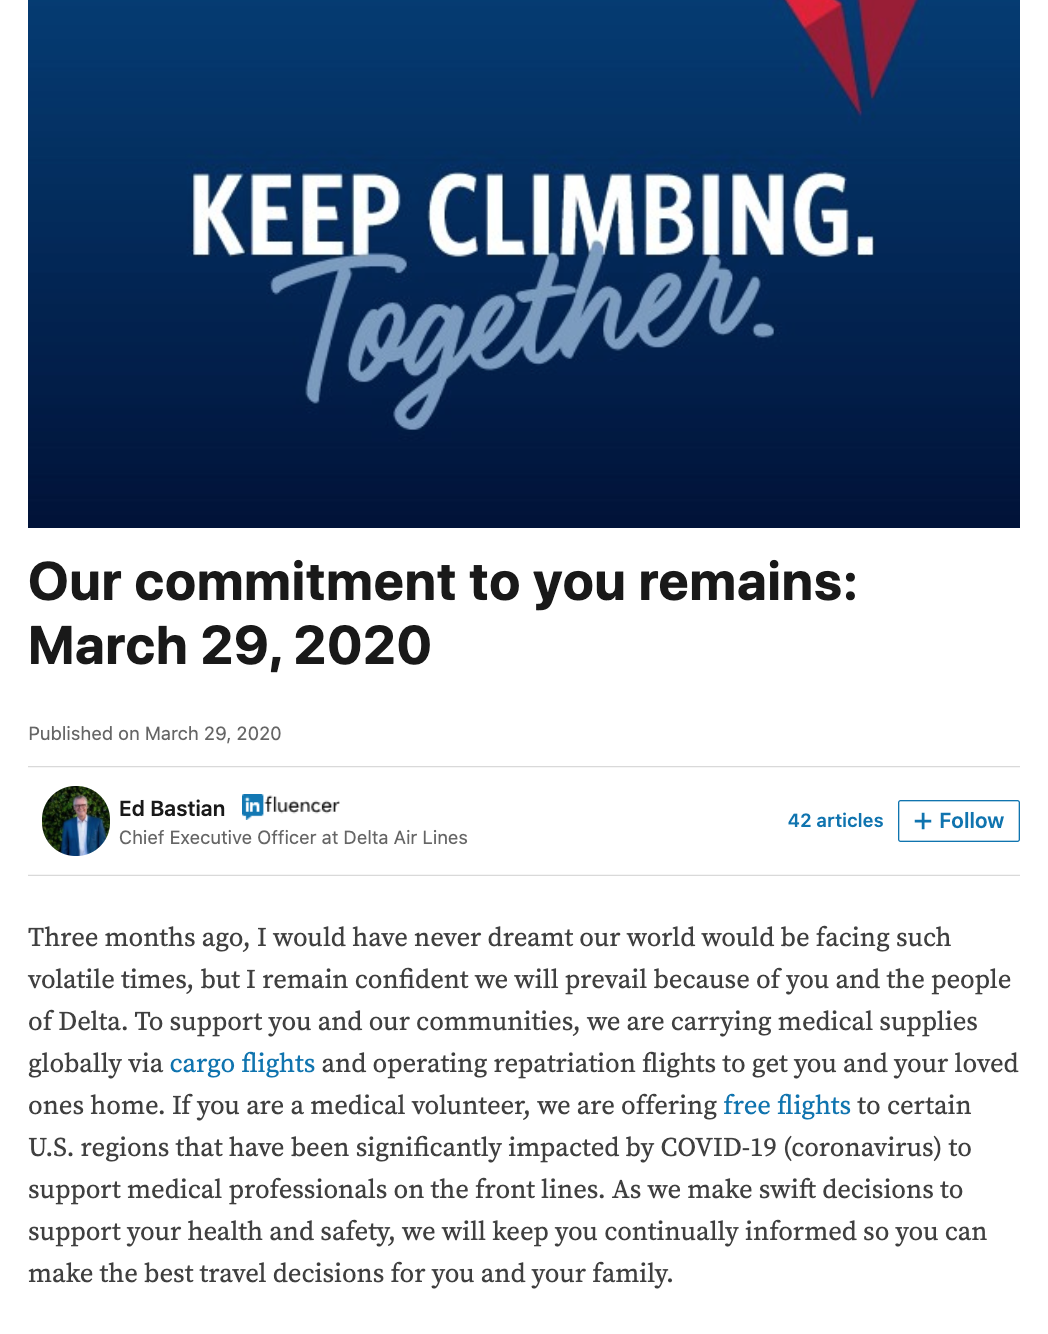 Screenshot of LinkedIn article from Ed Bastian, CEO of Delta Air Lines, published March 29, 2020